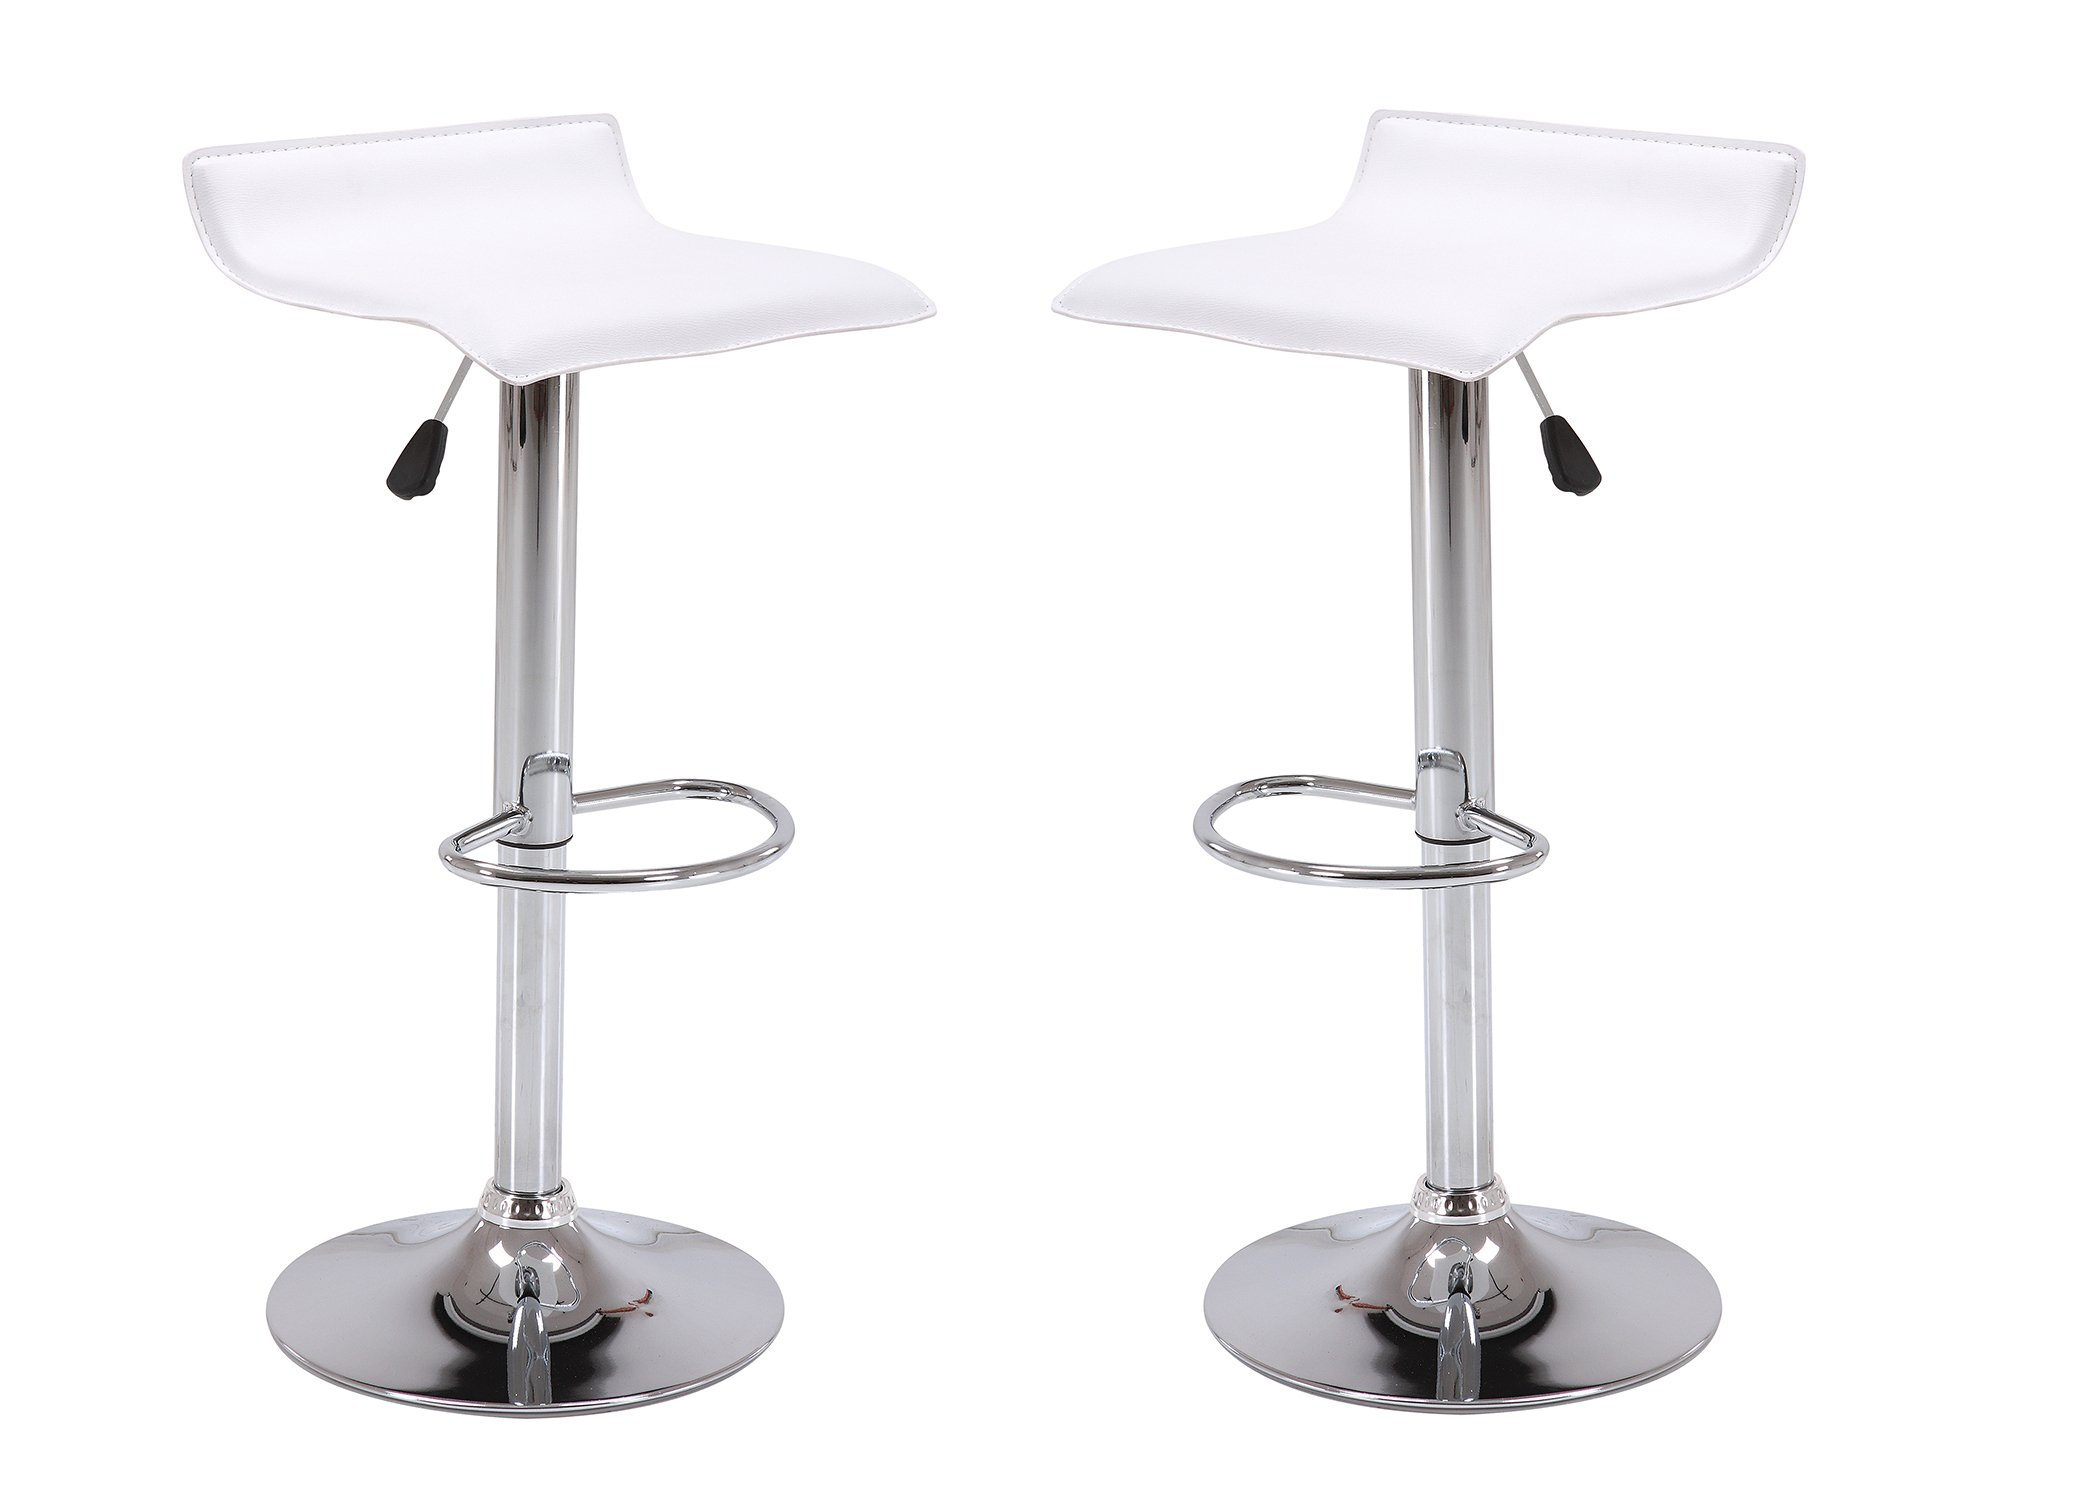 Vogue Furniture Direct Adjustable Height Swivel Barstools with Footrest, White (Set of 2) VF1581045-2